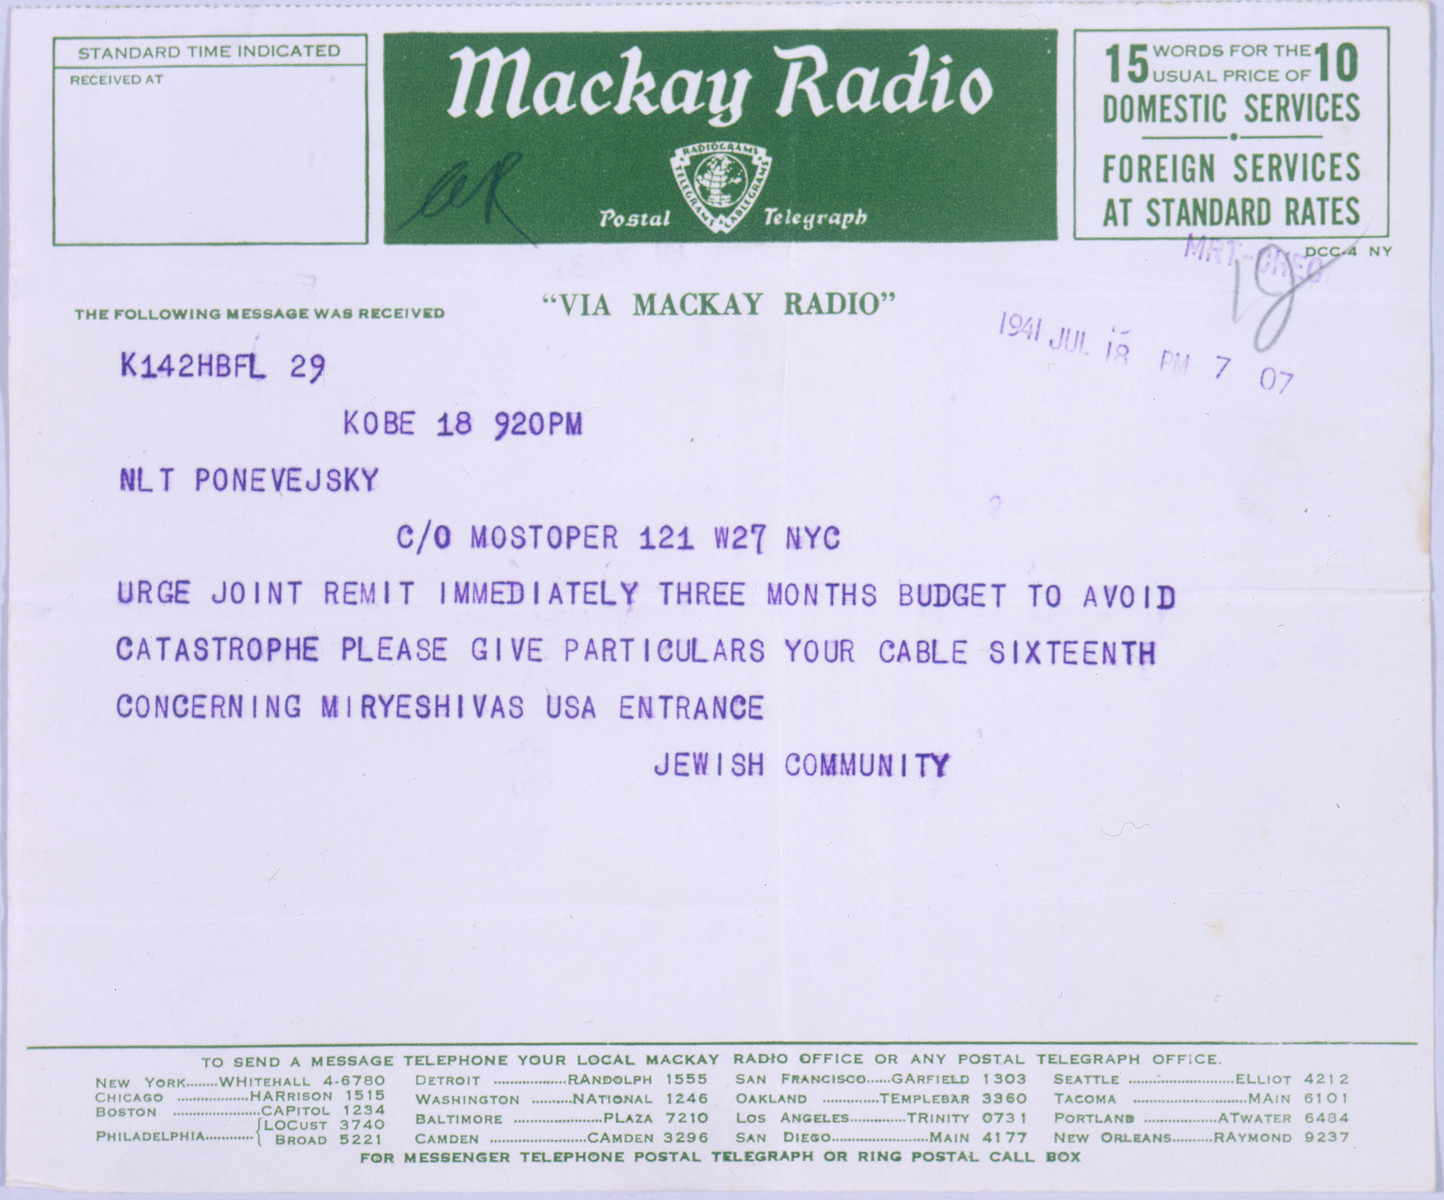 A Mackay Radio telegram sent to Anatole Ponevejsky, the former head of the Kobe Jewish community who had recently immigrated to America, asking for his help in securing visas for refugees in Japan.